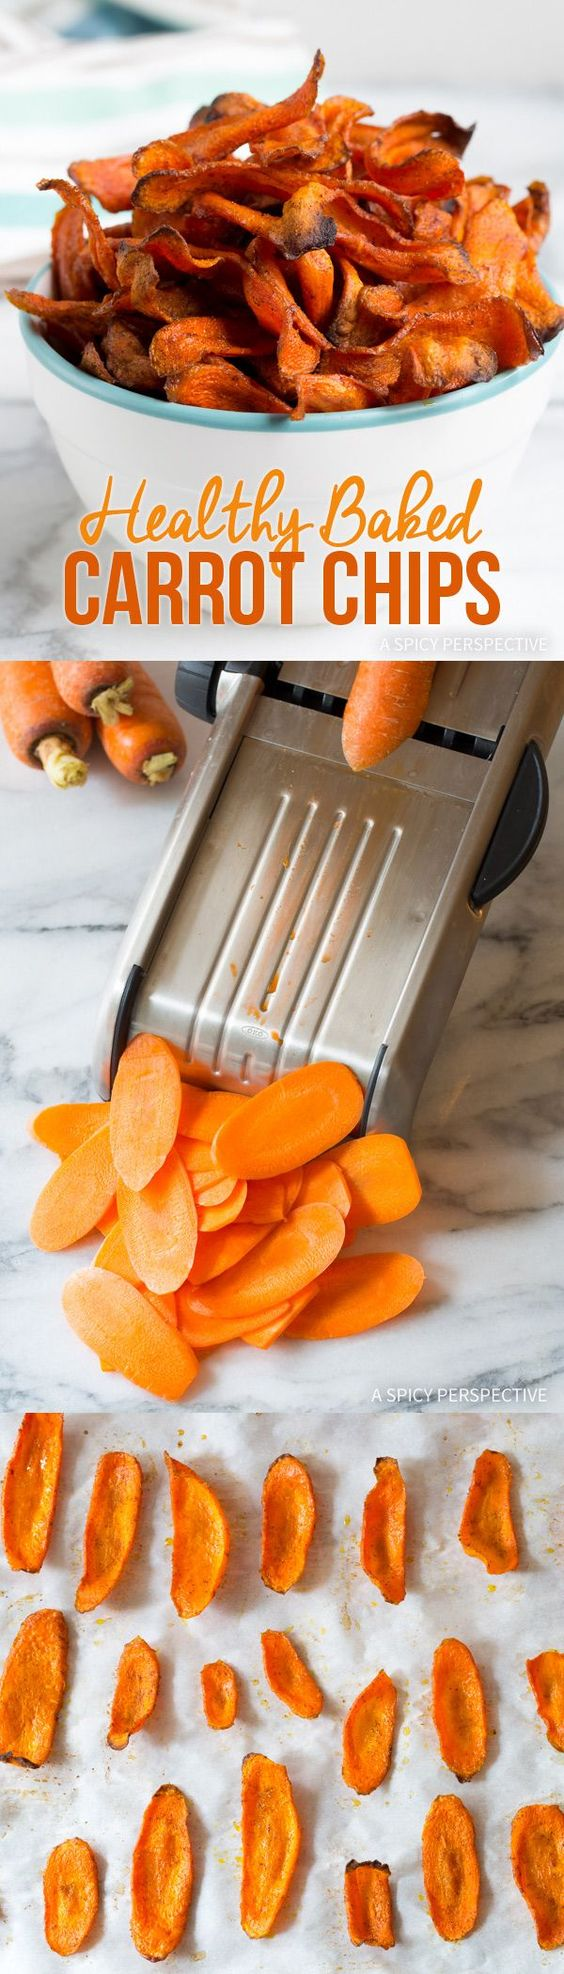 Healthy Baked Carrot Chips.